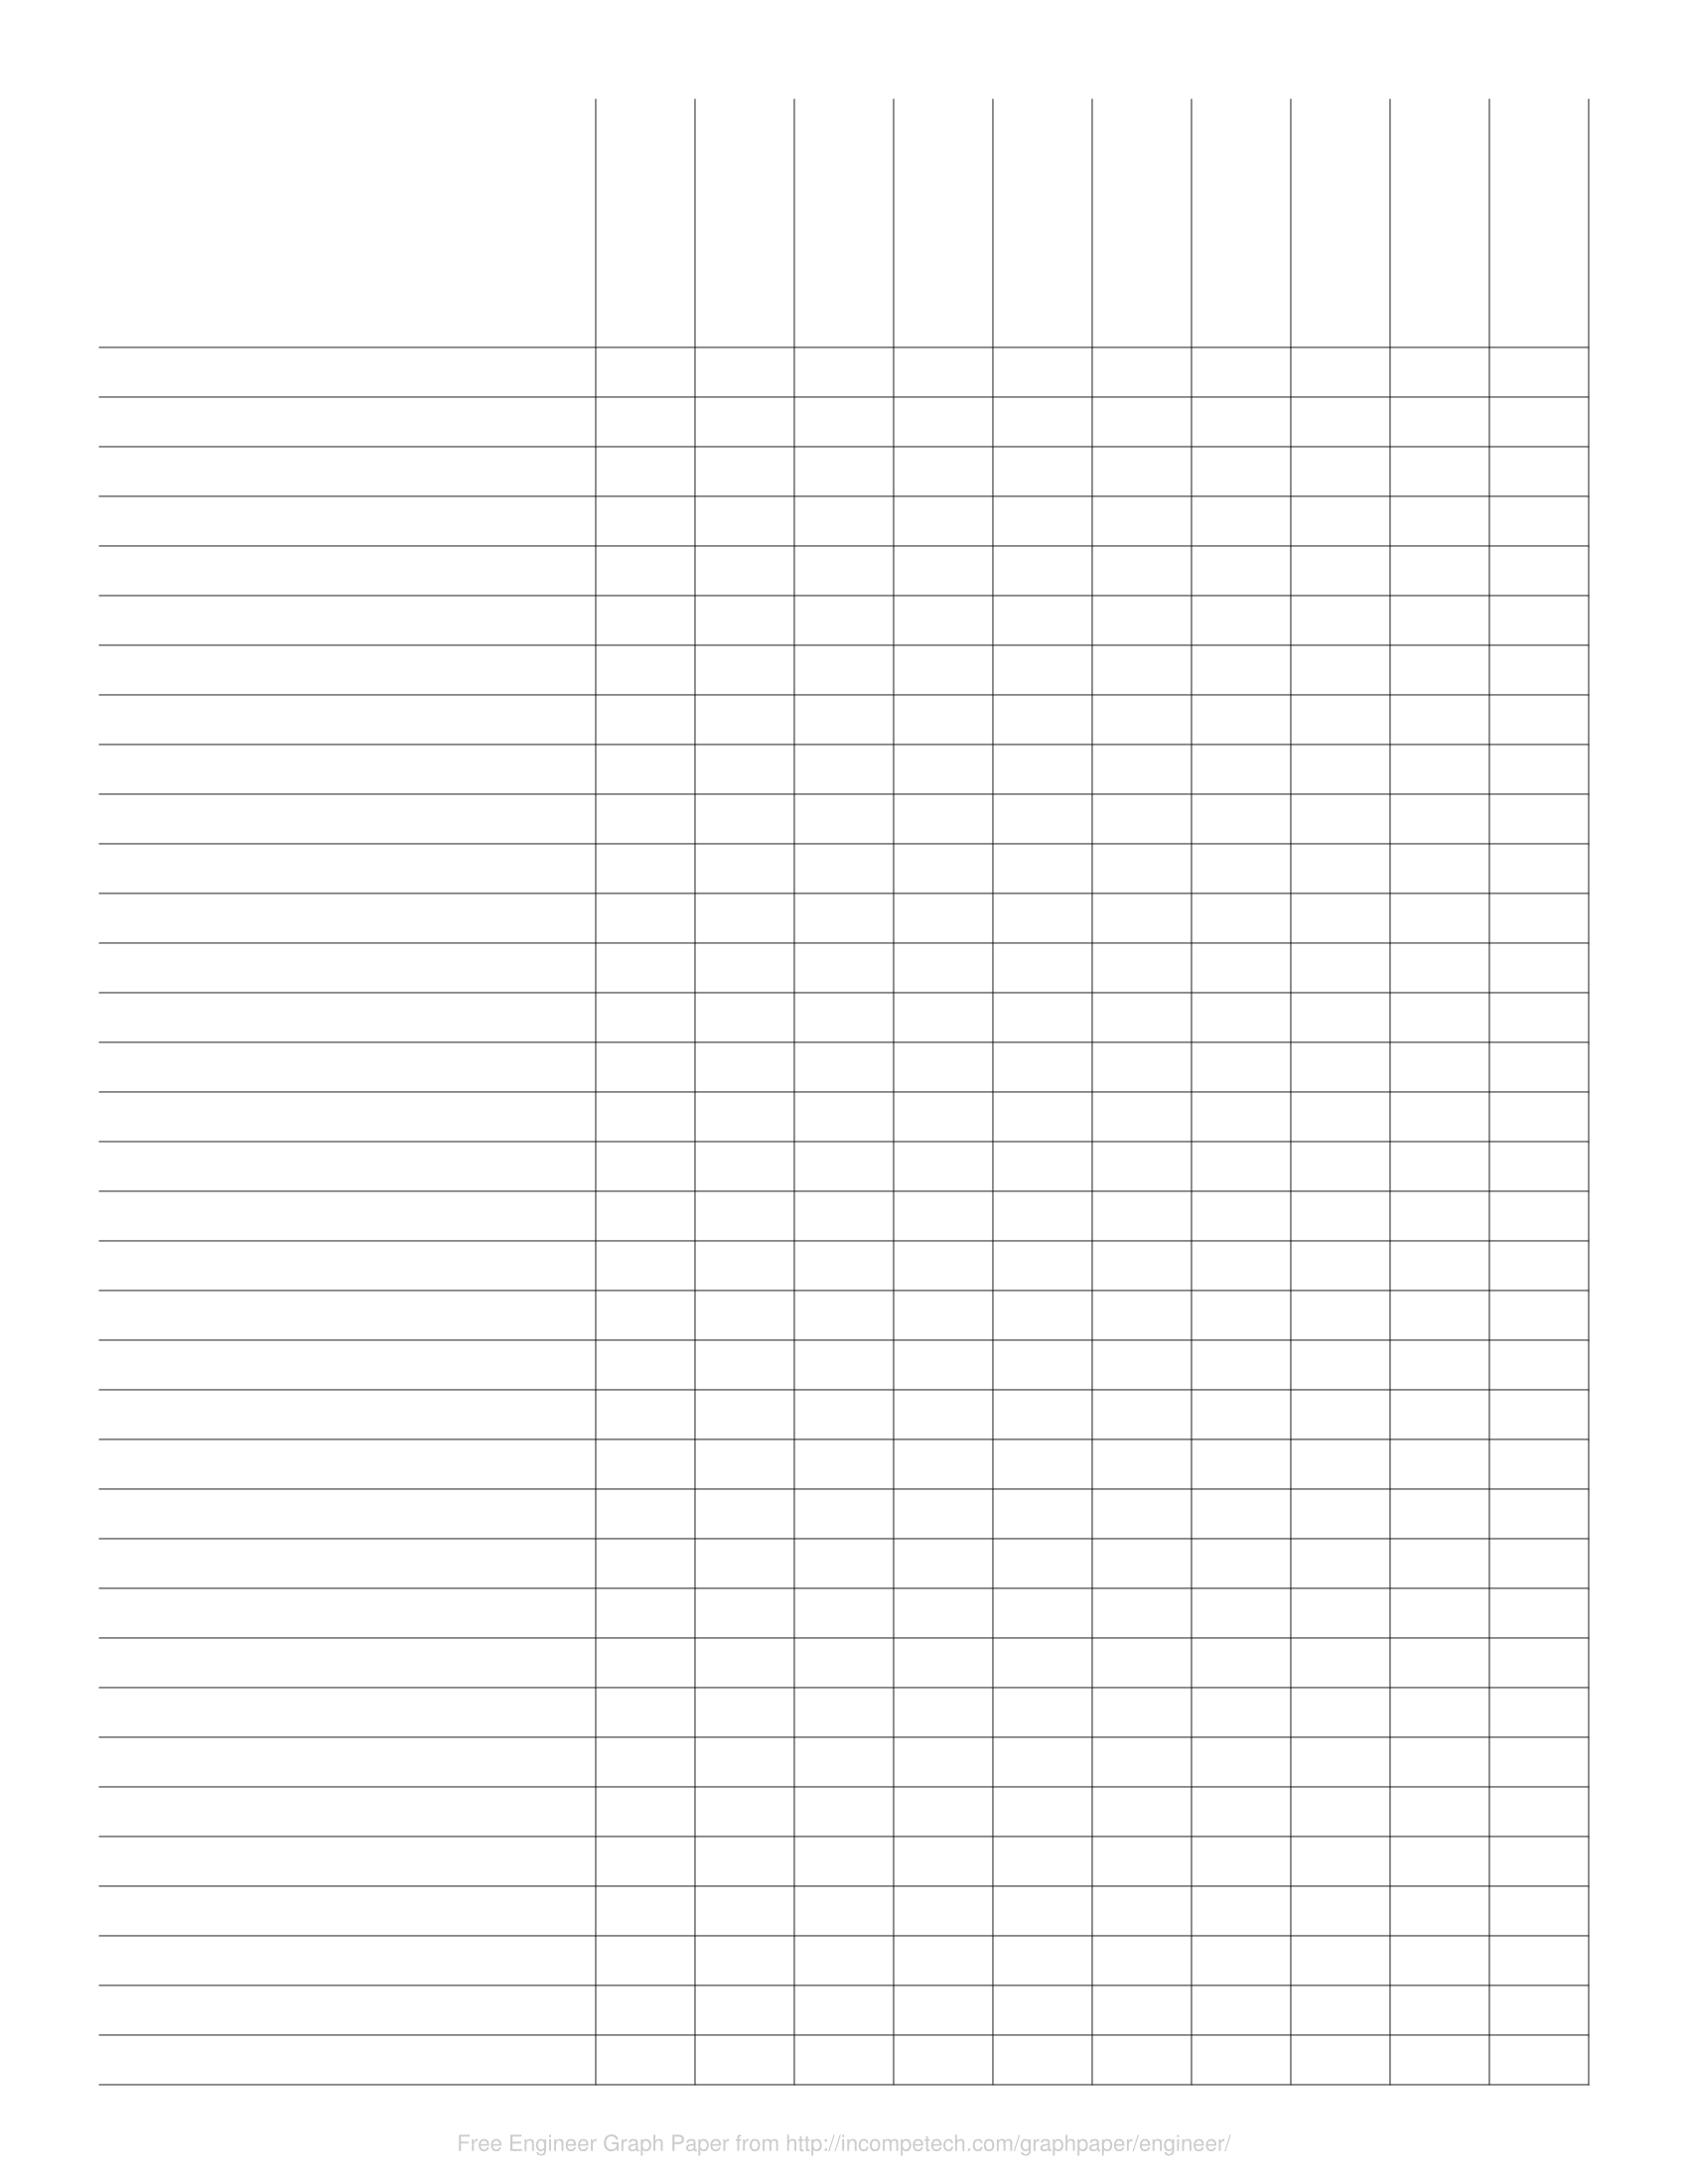 Free Online Graph Paper Engineer